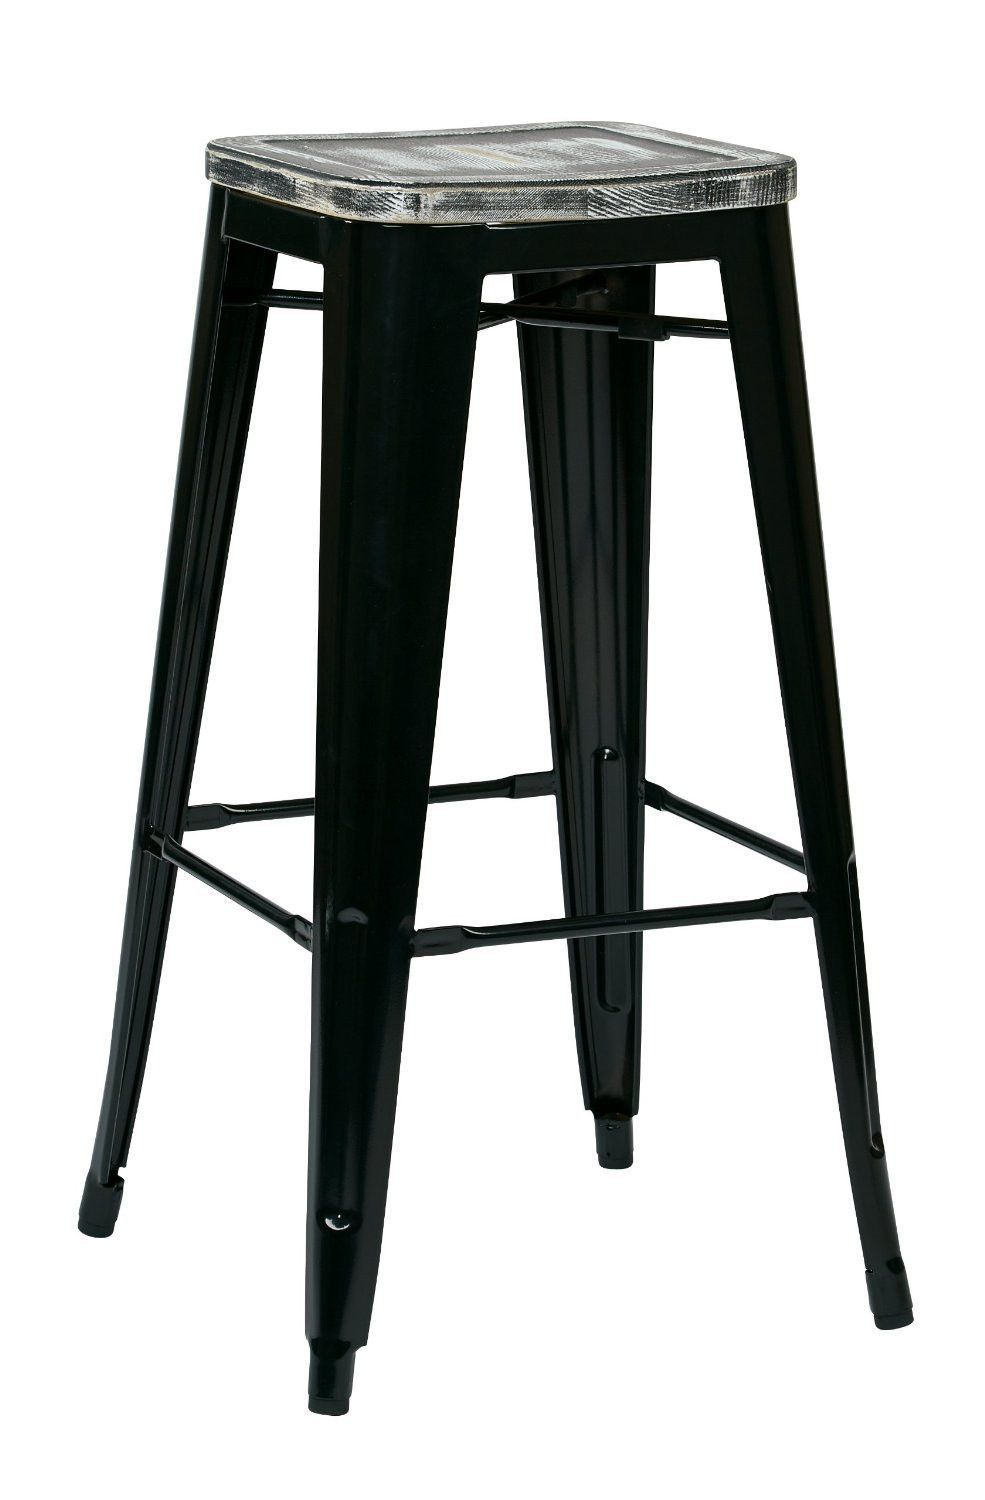 """OSP Designs BRW31303A4-C306 Bristow 30"""" Antique Metal Barstool with Vintage Wood Seat, Black Finish Frame & Pine Alice Finish Seat, 4 Pack"""